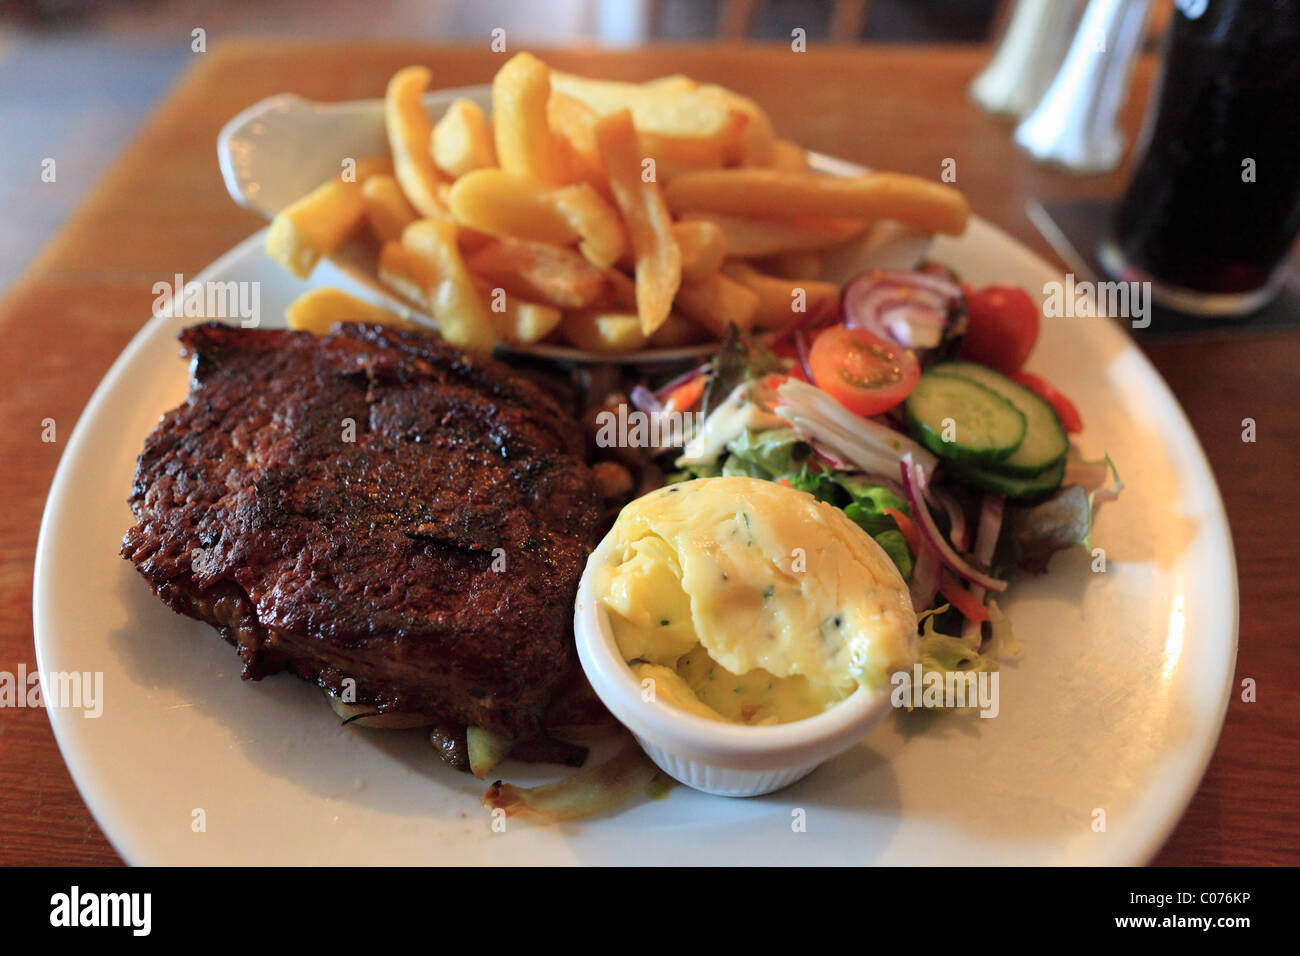 Beef steak, O'Connor's Pub, Doolin, County Clare, Republic of Ireland, Europe - Stock Image